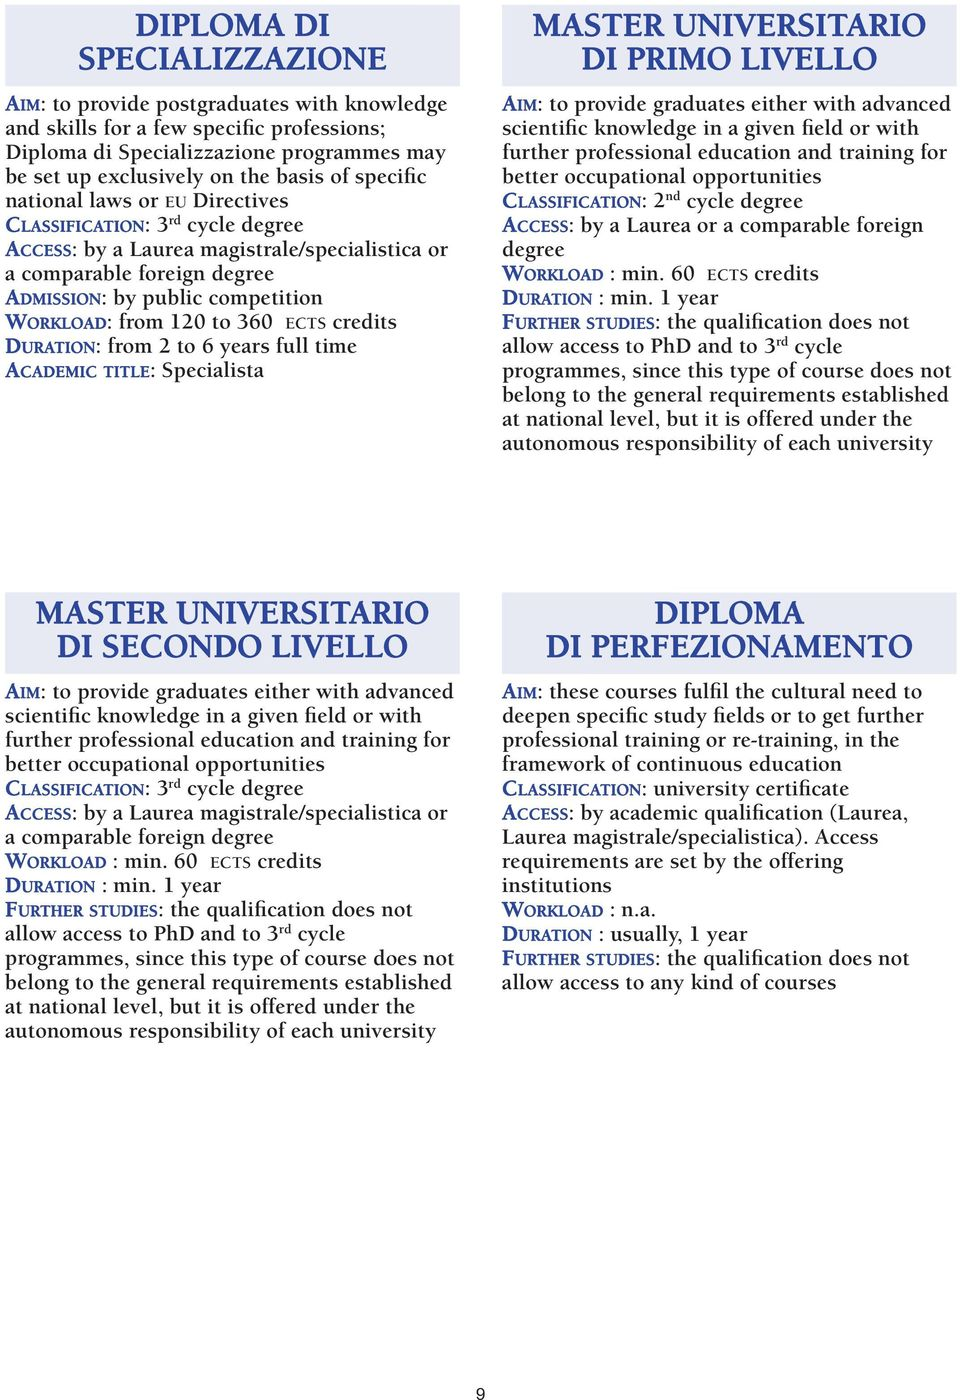 120 to 360 ECTS credits DURATION: from 2 to 6 years full time ACADEMIC TITLE: Specialista MASTER UNIVERSITARIO DI PRIMO LIVELLO AIM: to provide graduates either with advanced scientific knowledge in